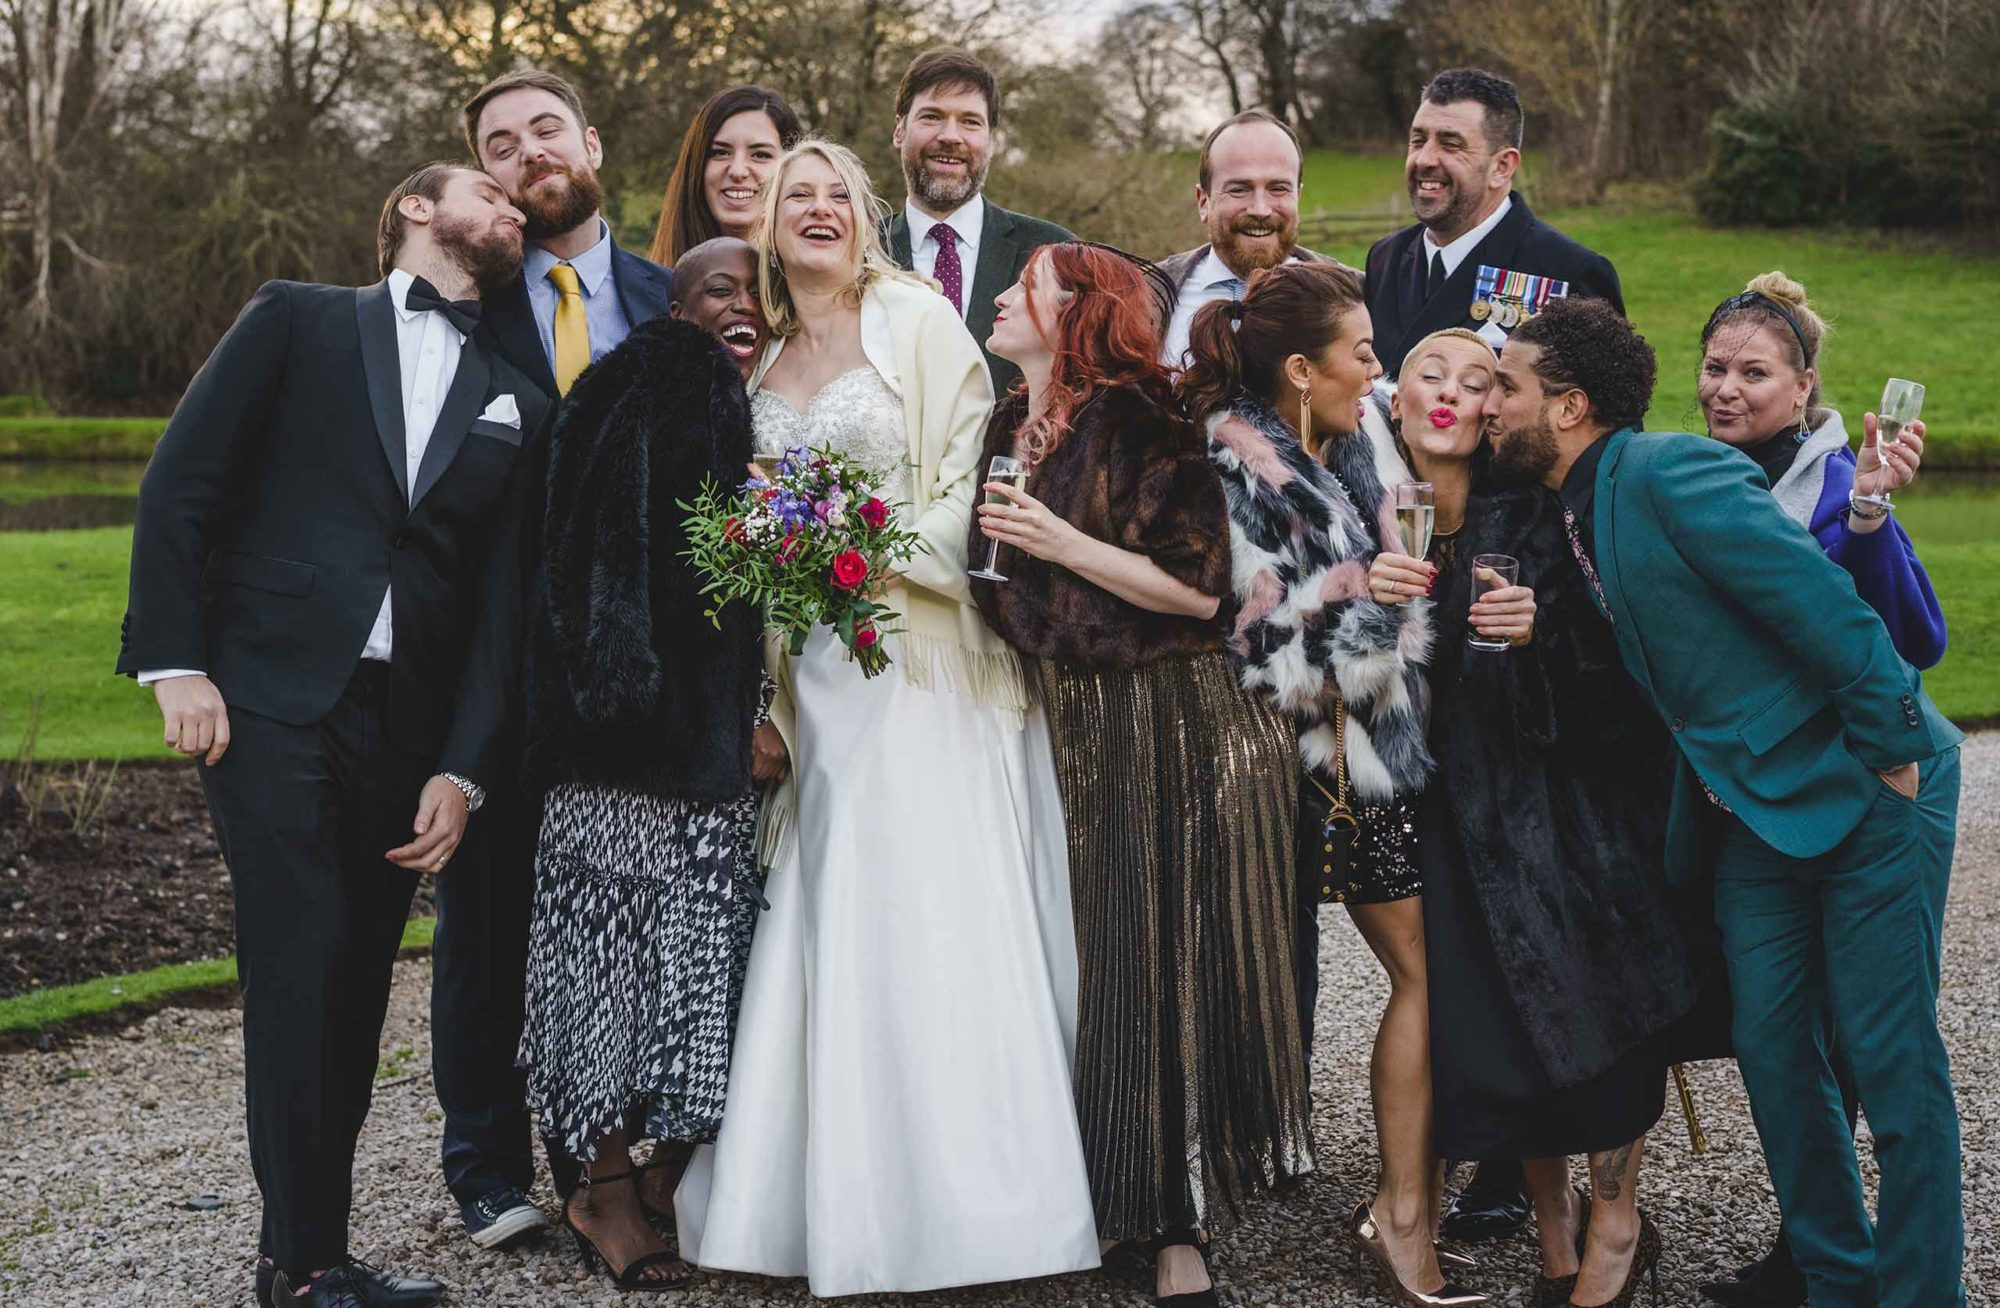 shropshire wedding and portrait photographer captures guests at a wedding